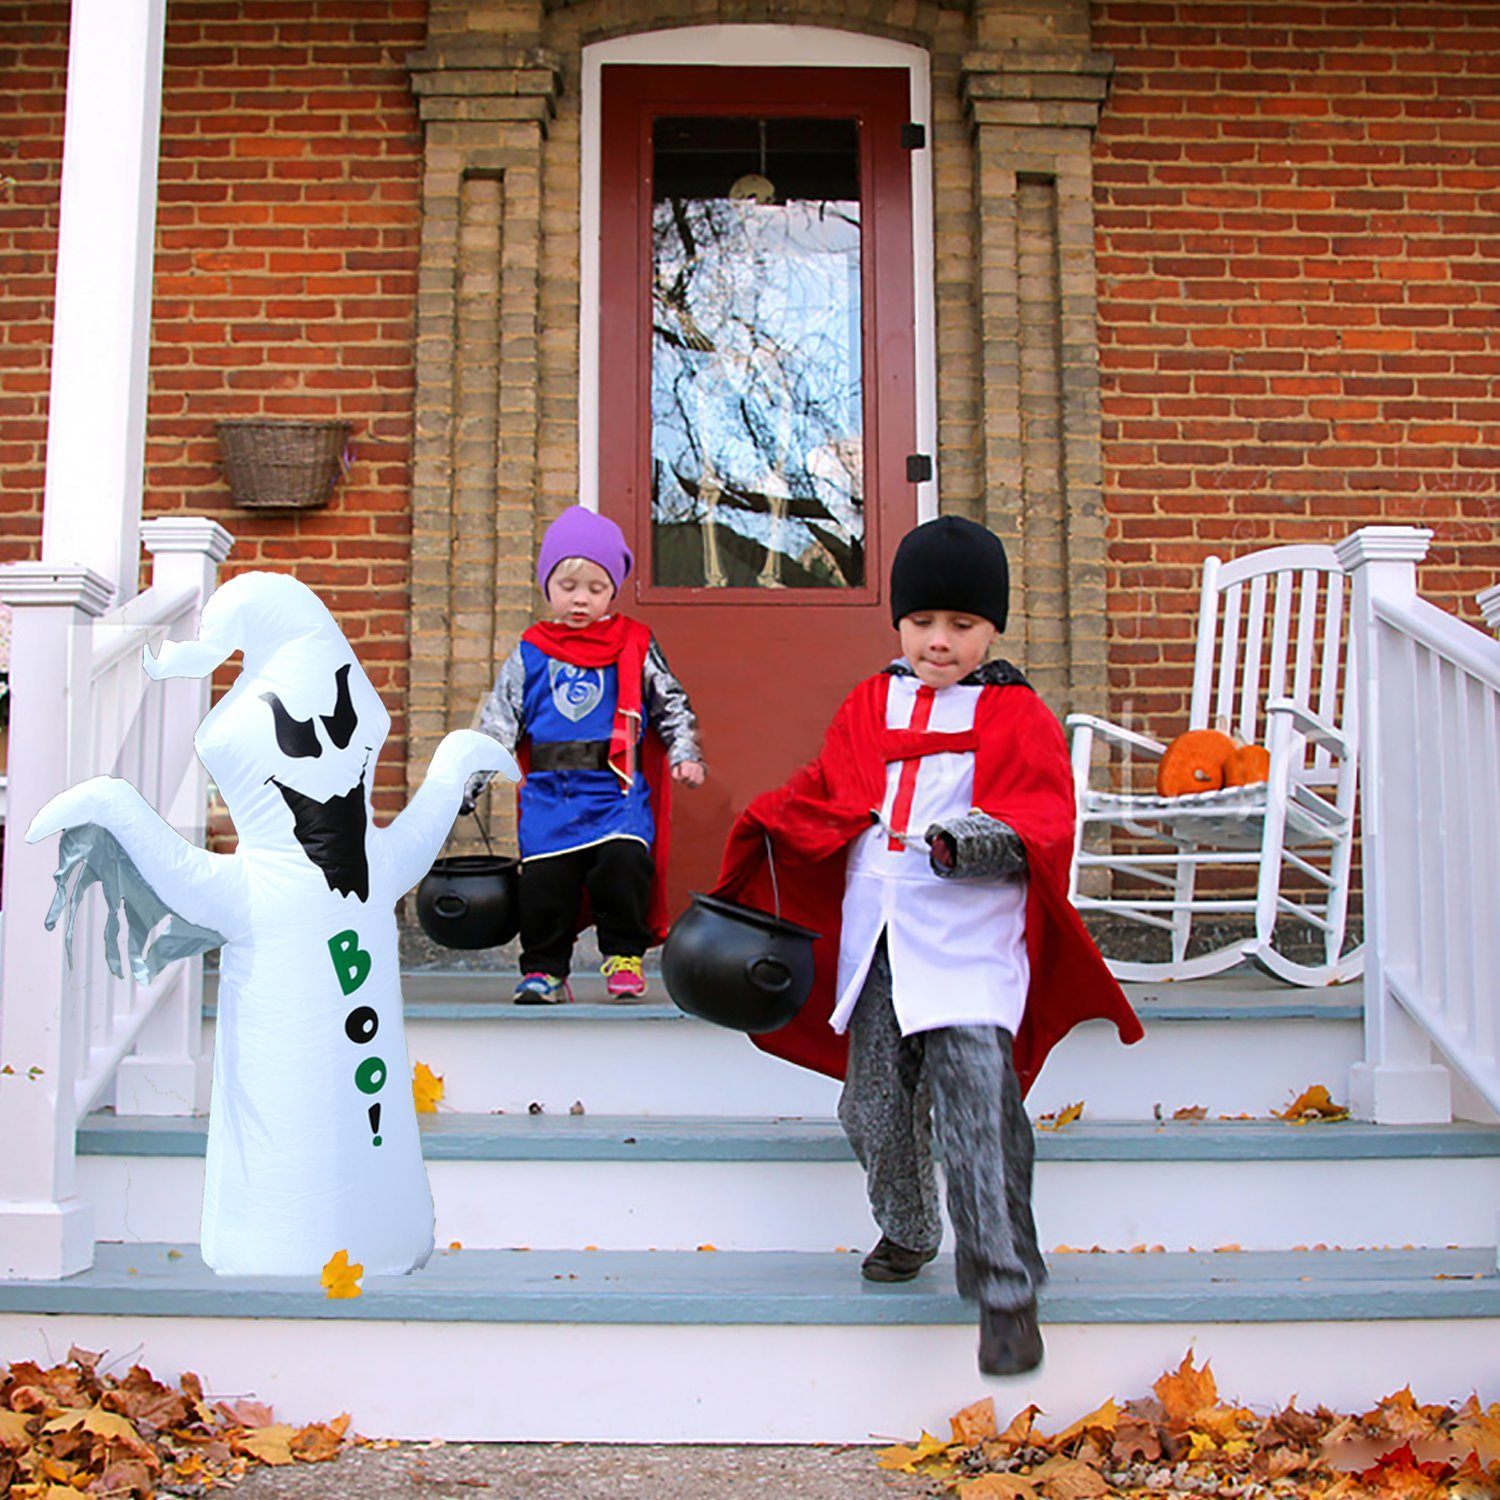 BrightTouch Inflatable Halloween Decorations - Ghost. Outdoor or Indoor (White) by BrightTouch (Image #4)